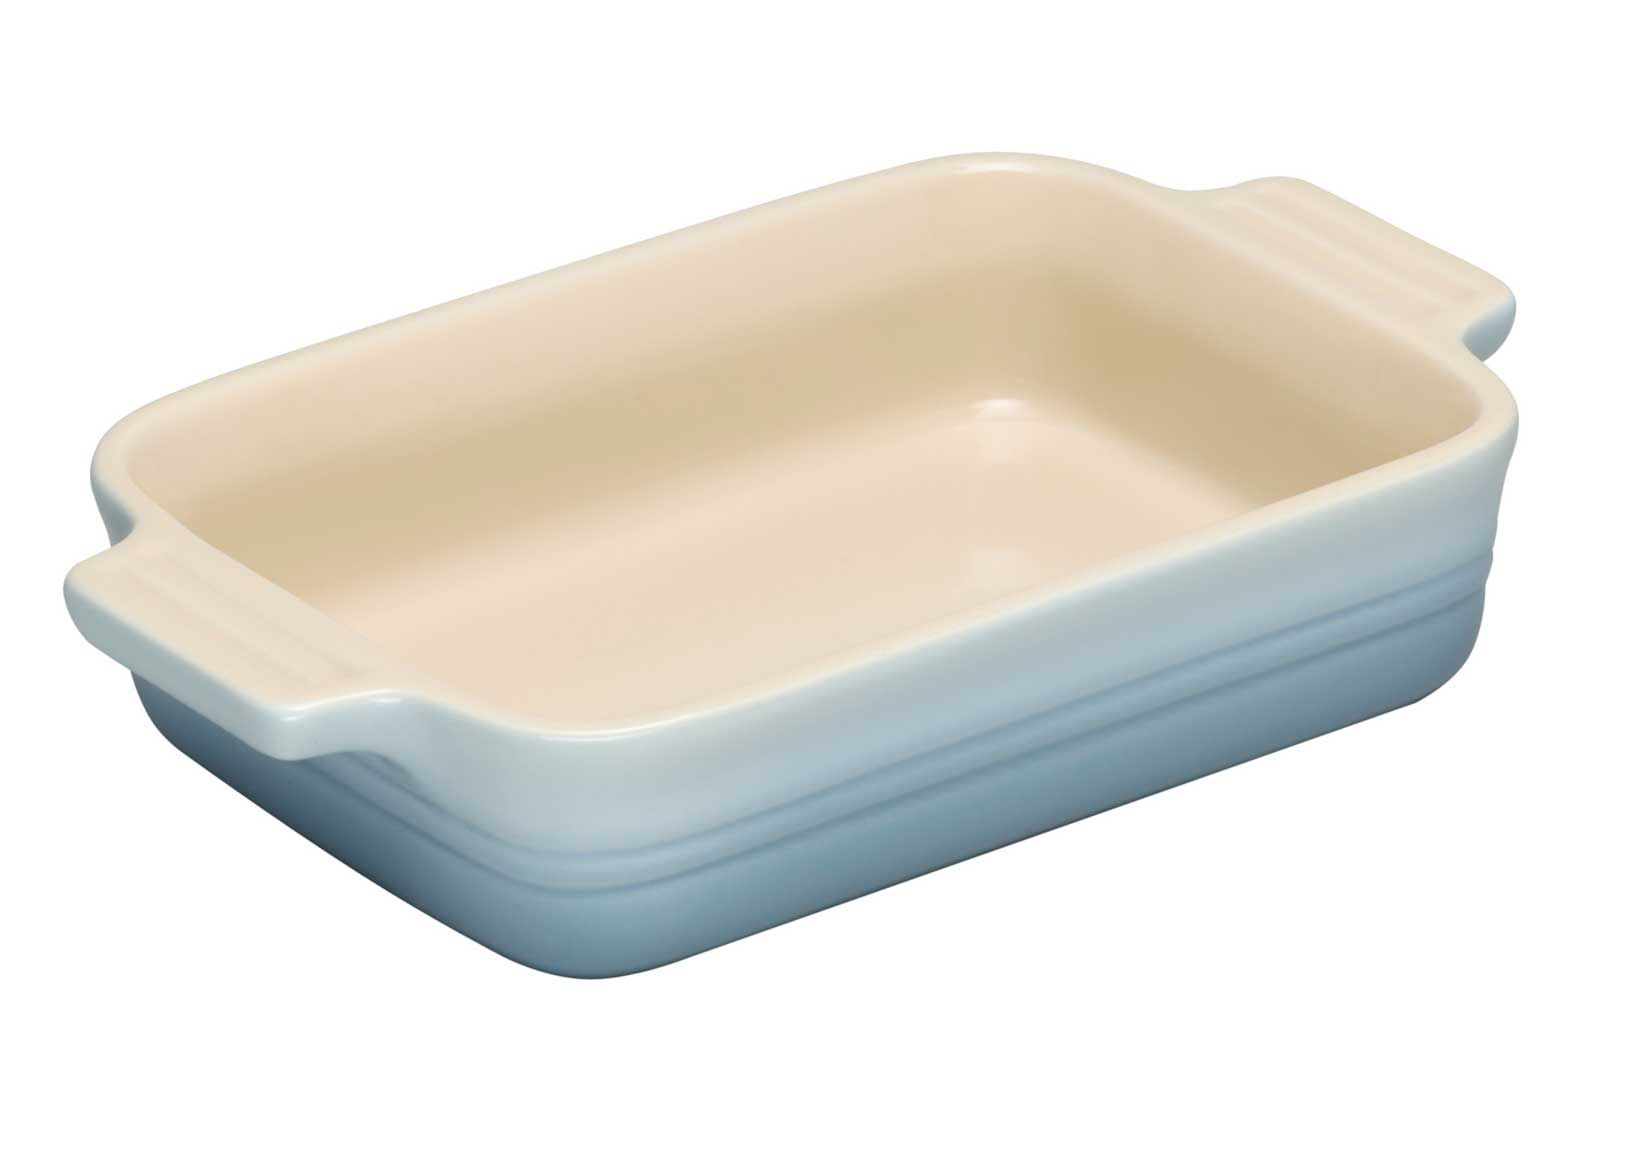 Rectangular dish, Coastal Blue, 19cm